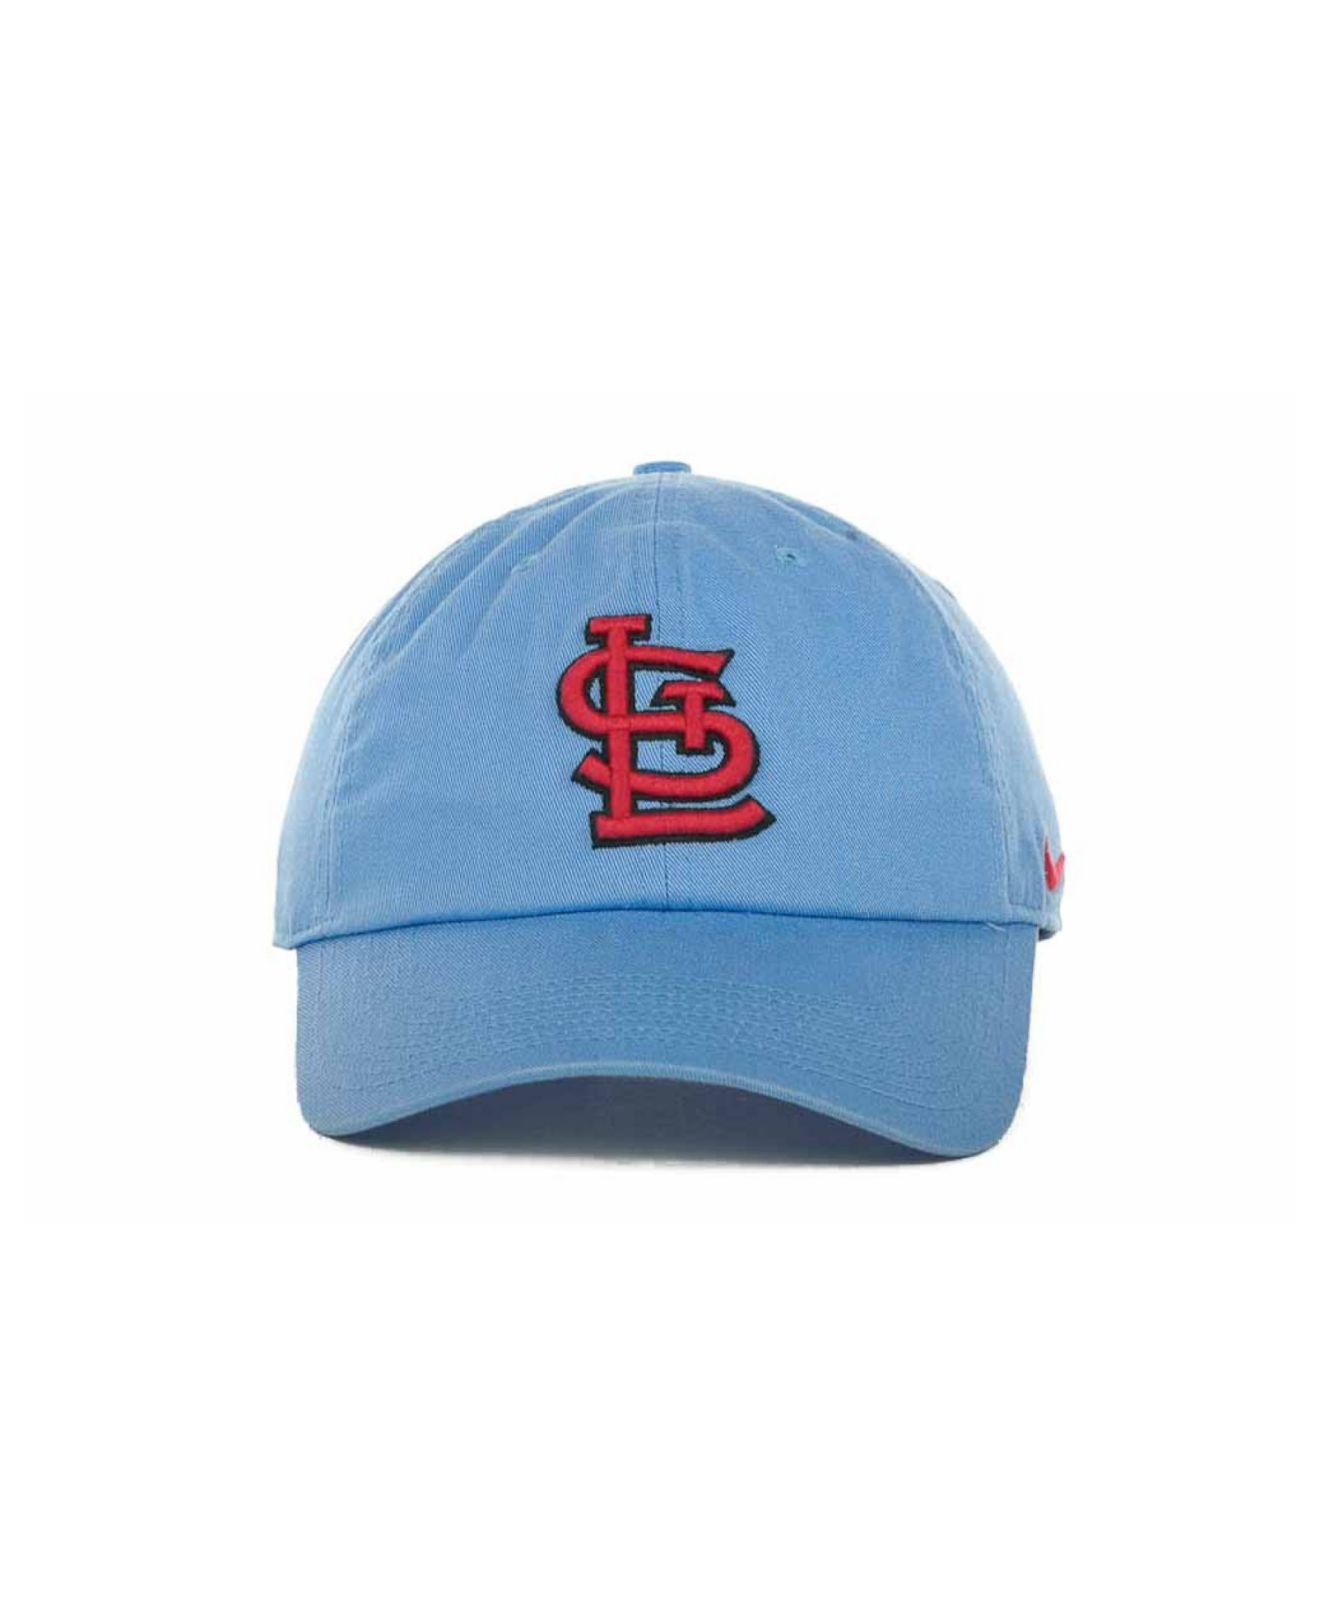 Lyst - Nike St. Louis Cardinals Stadium Cap in Blue for Men f35cb4bcd27